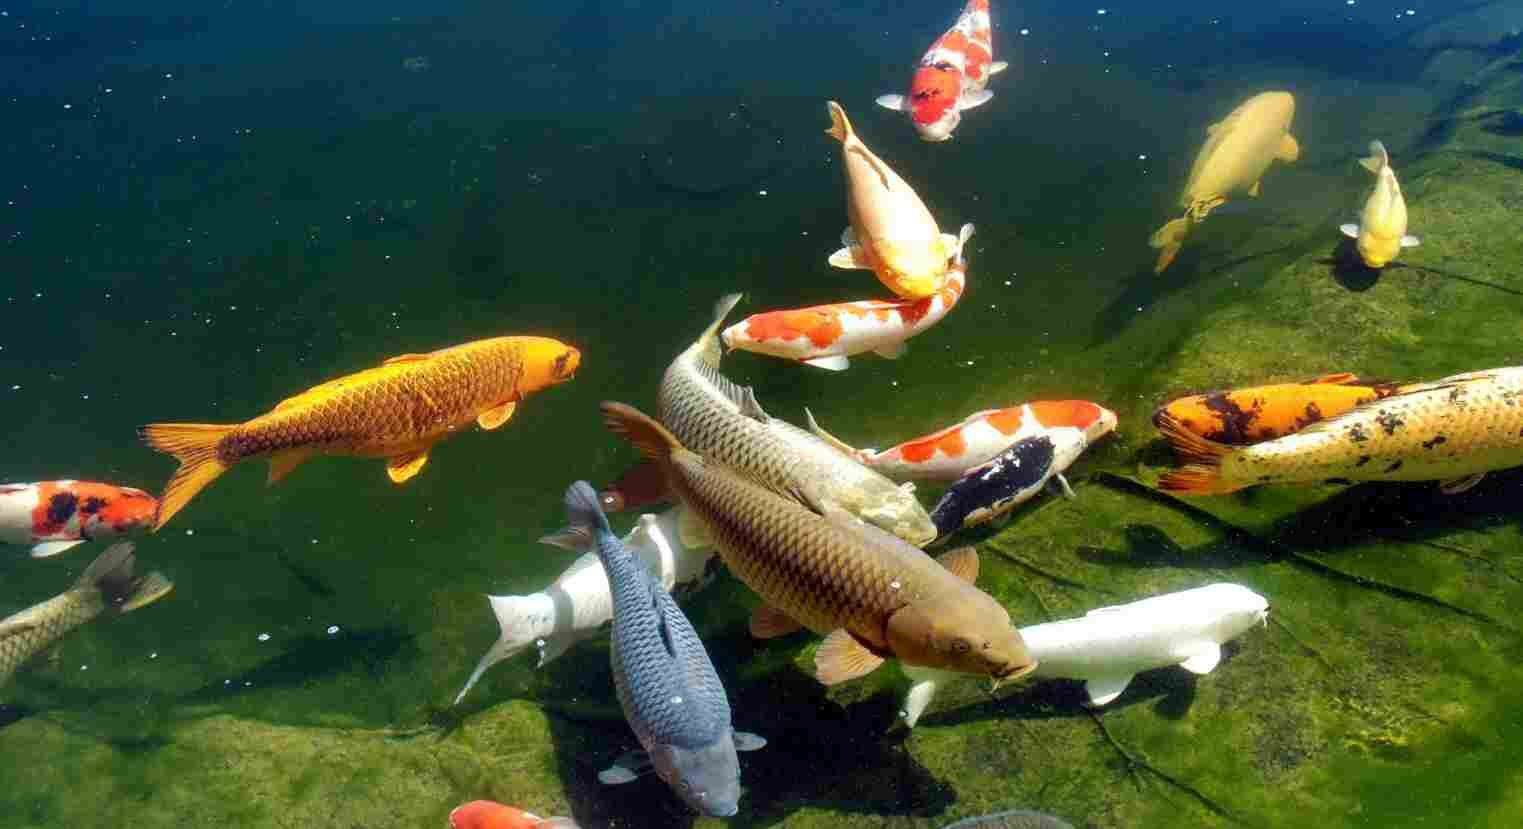 Koi fish pond wallpaper hd koi fish in the pond koi for Koi fish images